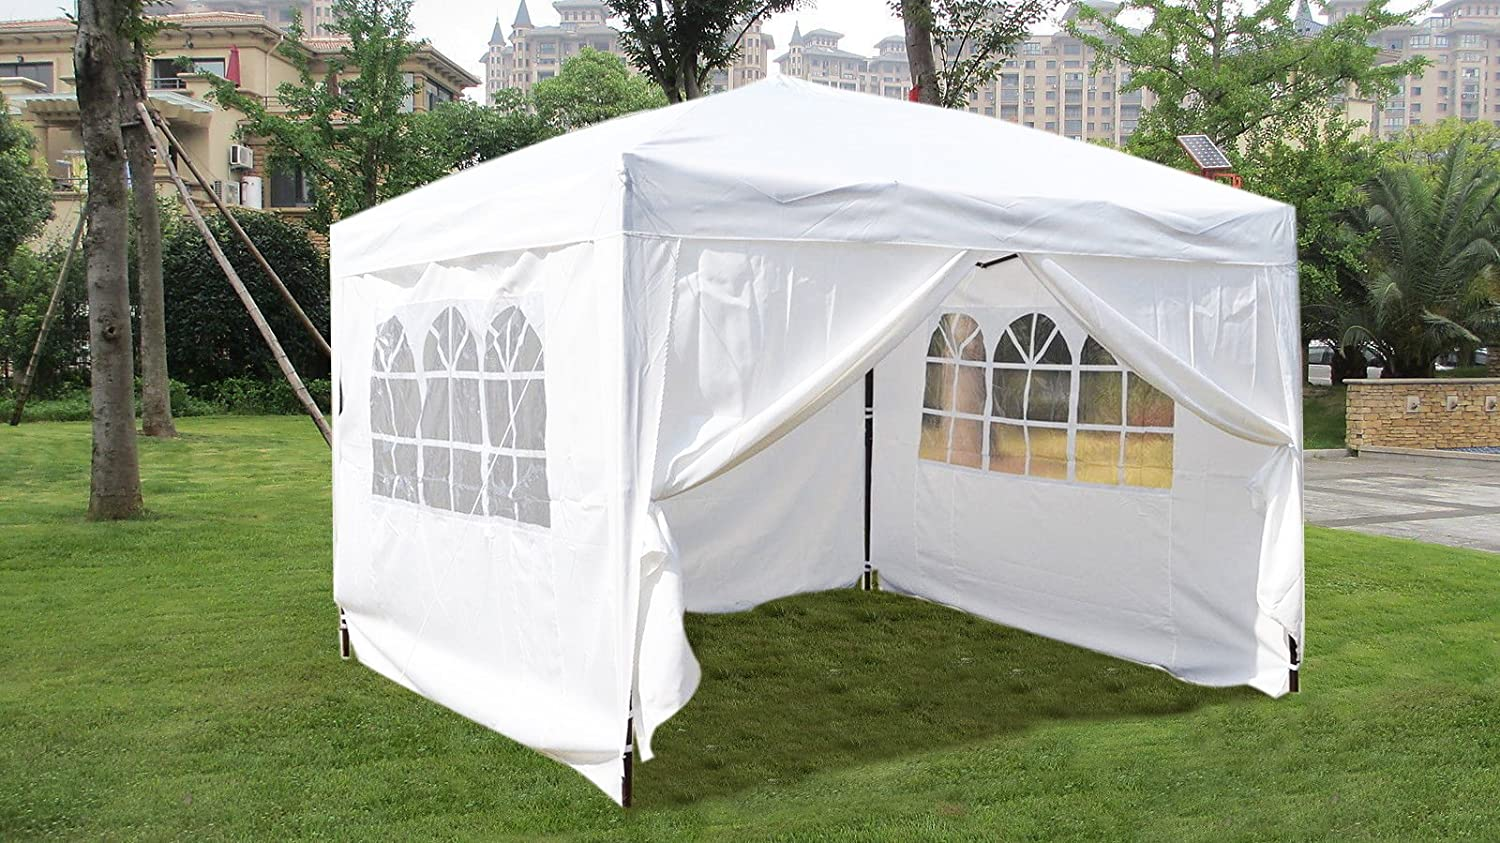 Amazon.com  MCombo EZ Pop Up Wedding Party Tent Folding Gazebo C&ing Canopy with Sides 10u0027 x 10u0027 White  Garden u0026 Outdoor : ez up tent with sides - memphite.com